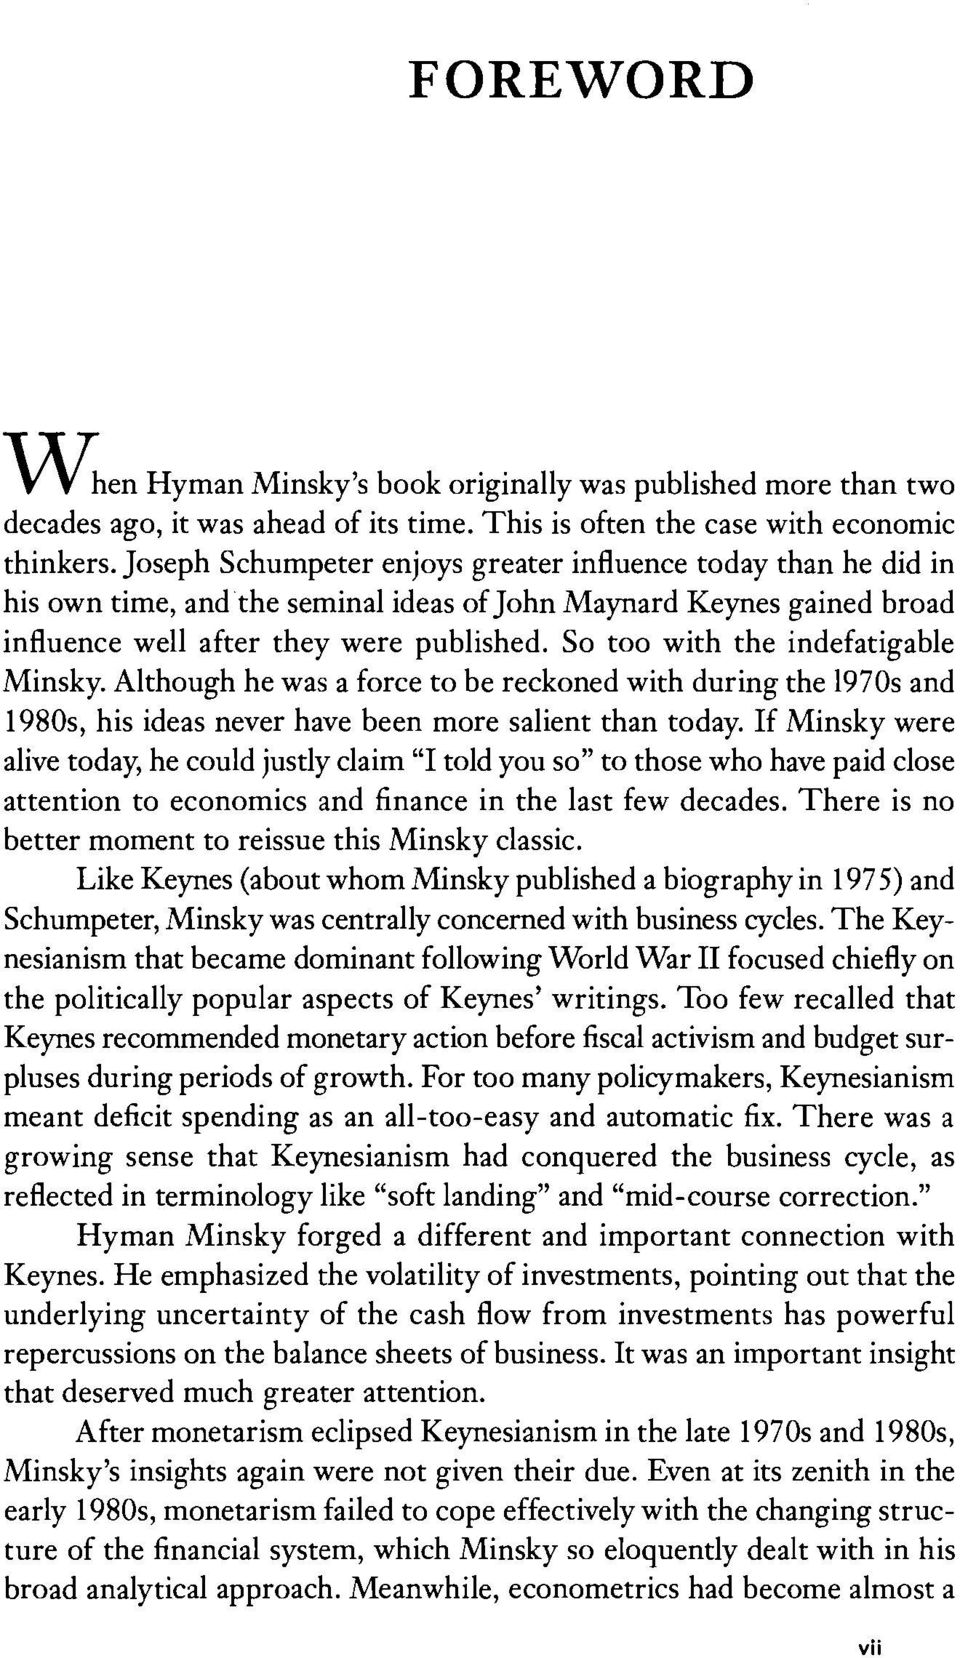 So too with the indefatigable Minsky. Although he was a force to be reckoned with during the 1970s and 1980s, his ideas never have been more salient than today.